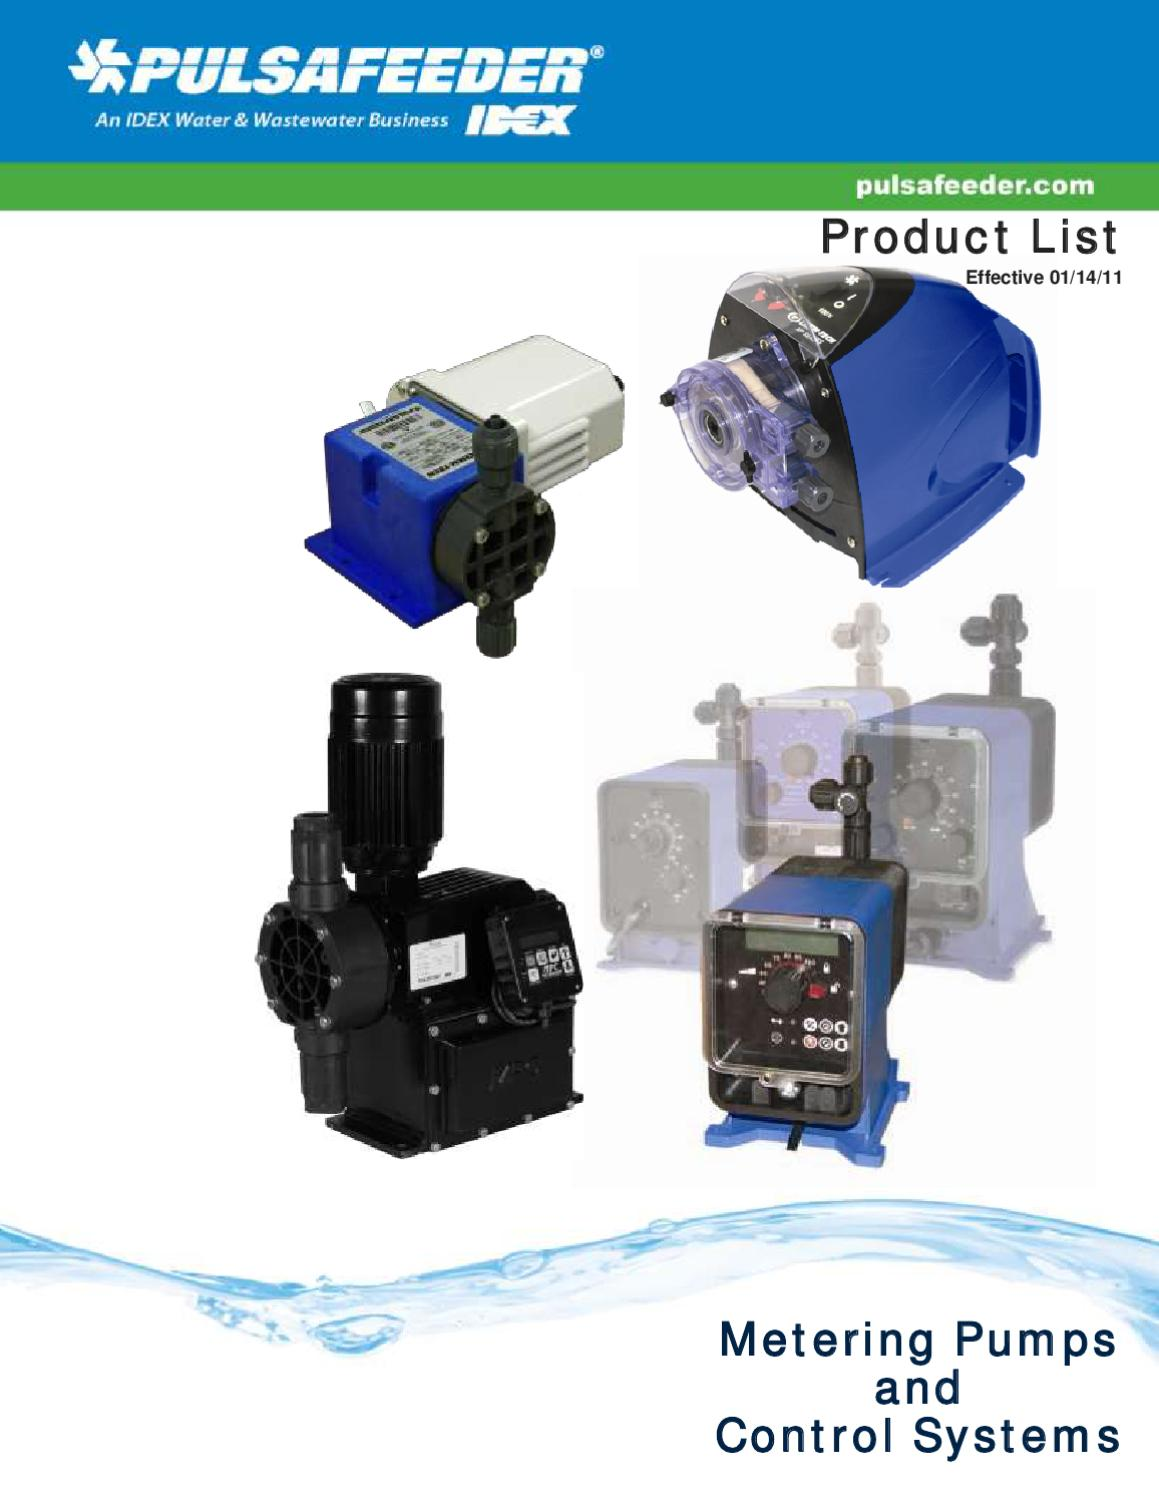 Pulsafeeder-Metering-Pumps-Product-List by Aqua Technology Group - issuu